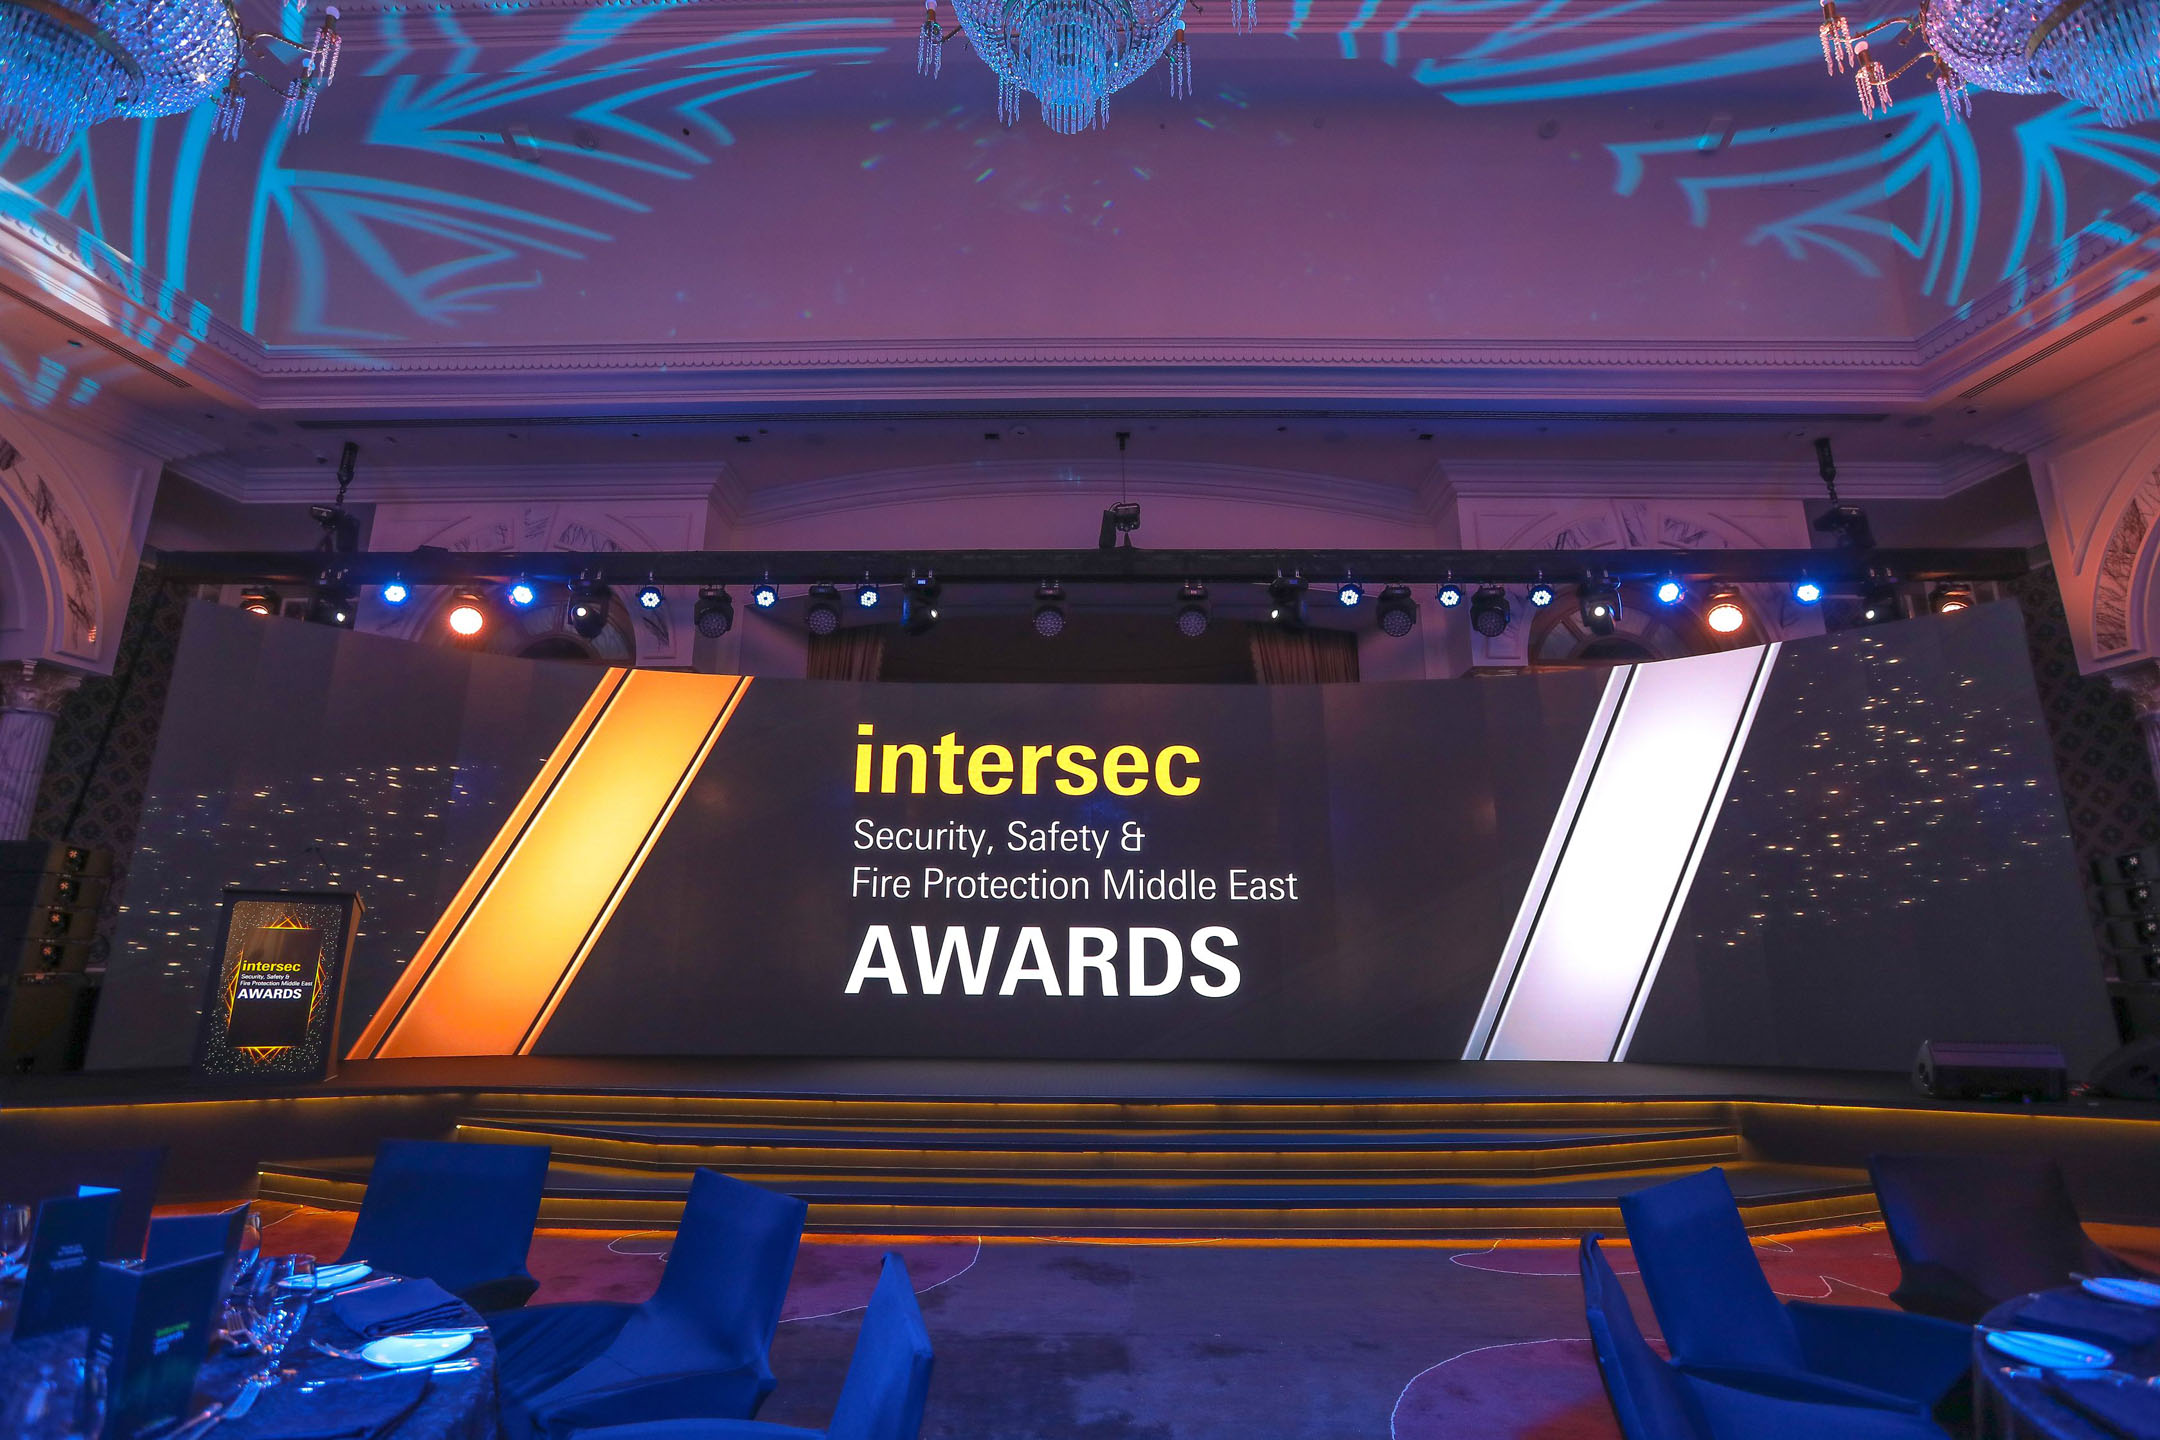 2019 Intersec Security, Safety & Fire Protection Middle East Awards